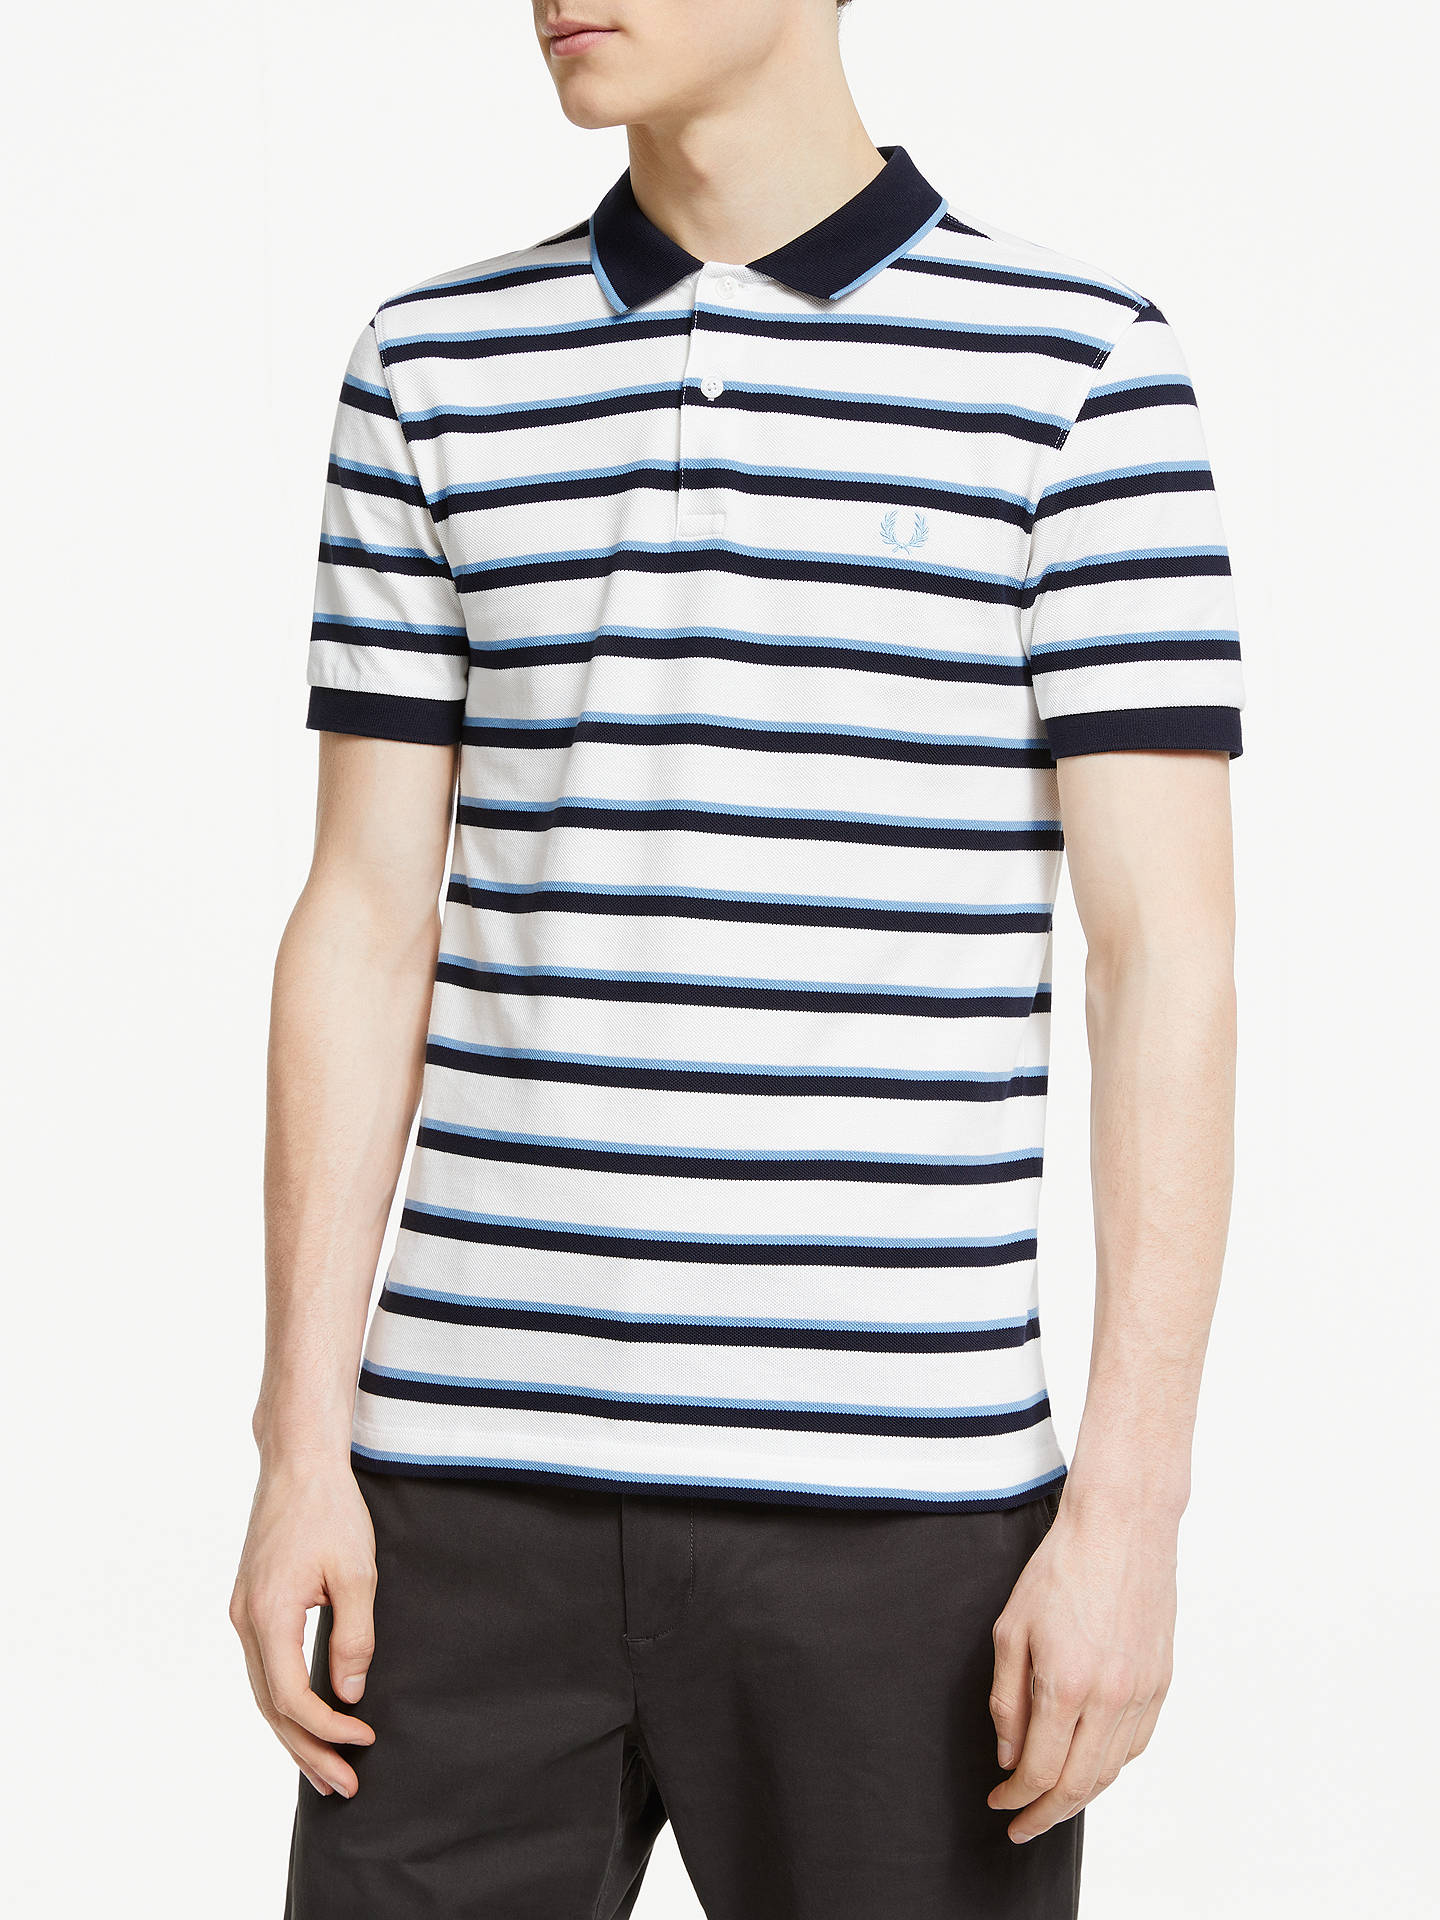 9fbc92c17 Fred Perry Stripe Tipped Pique Polo Shirt, Snow White/Navy